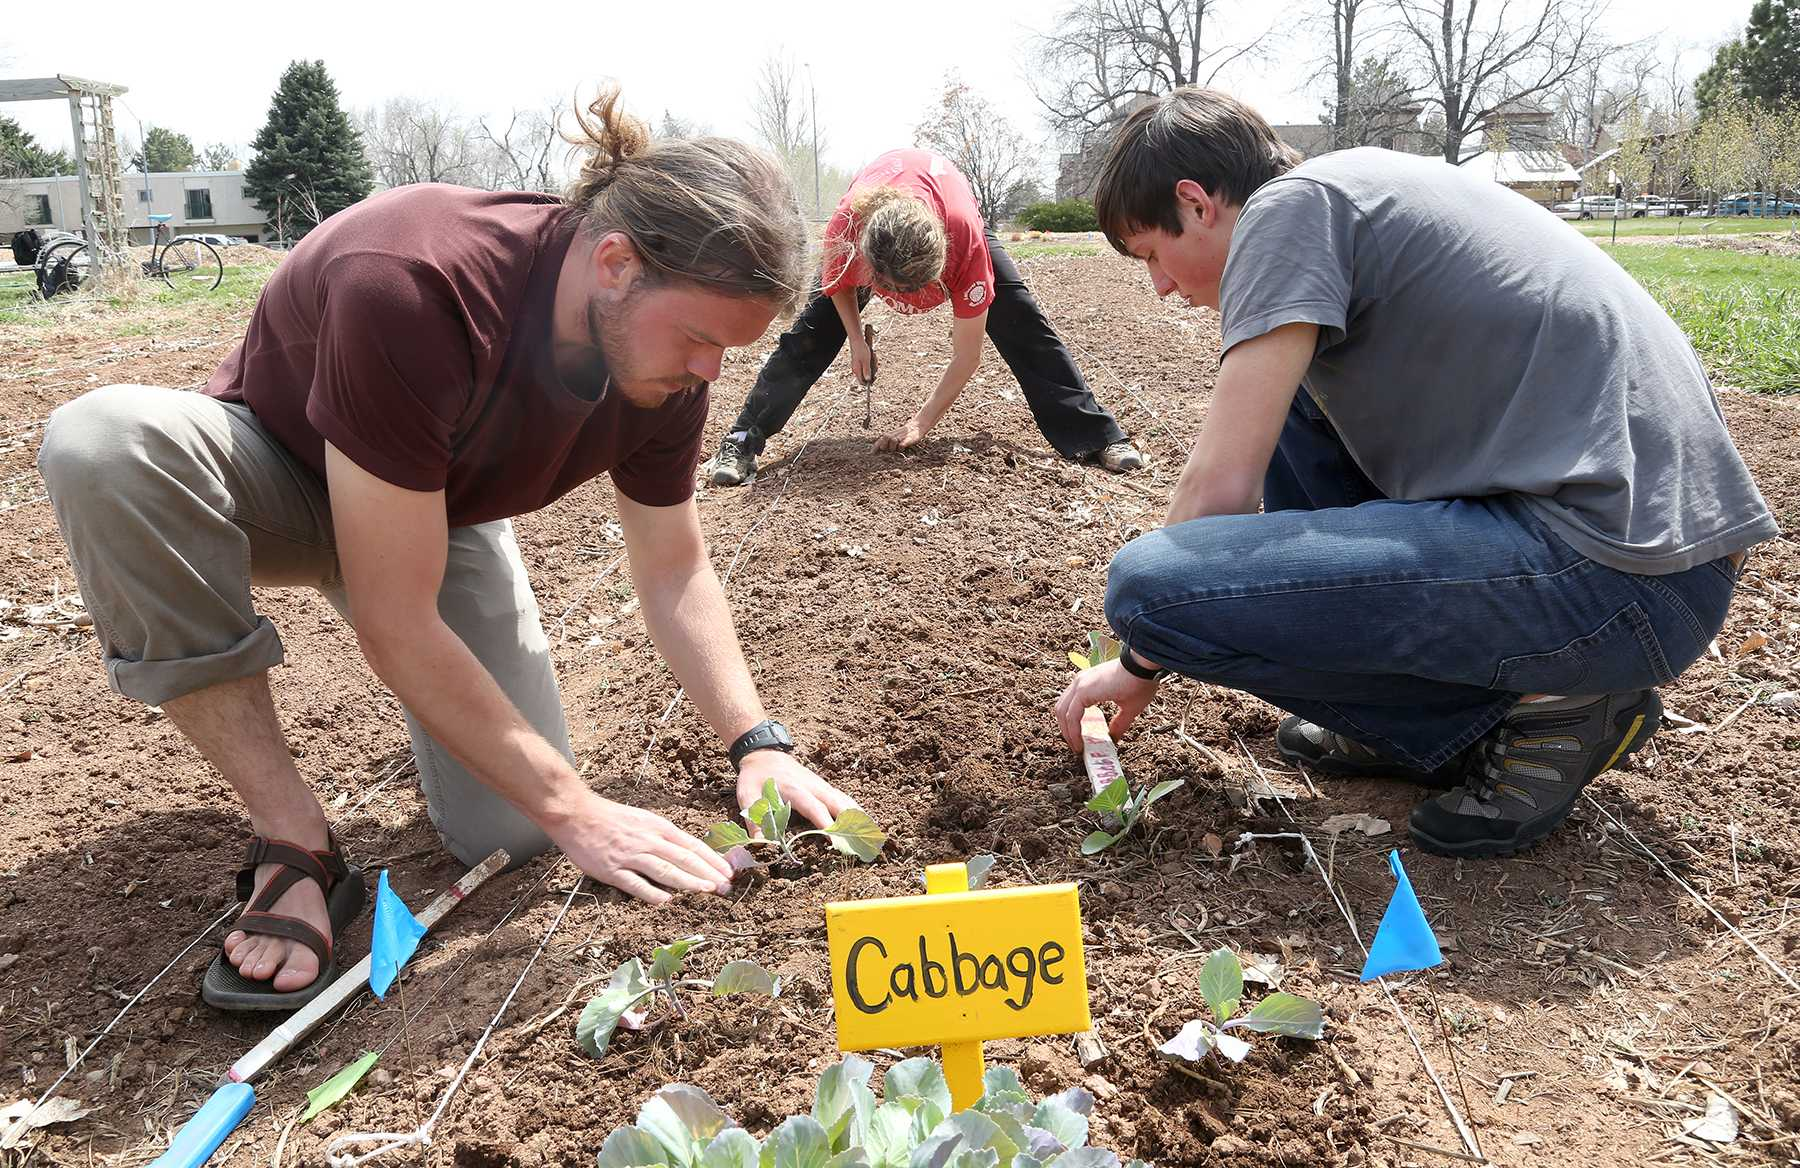 Junior wildlife biology major Brent Pease, left, Agriculture graduate student Amy Kousch, center, and sophmore soil and crop science major Colton Heeney plant cabbage in the student sustainable farm yesterday afternoon. The student run farm grows a variety of fruits, vegtables and other plants and has done so for the last 16 growing seasons.